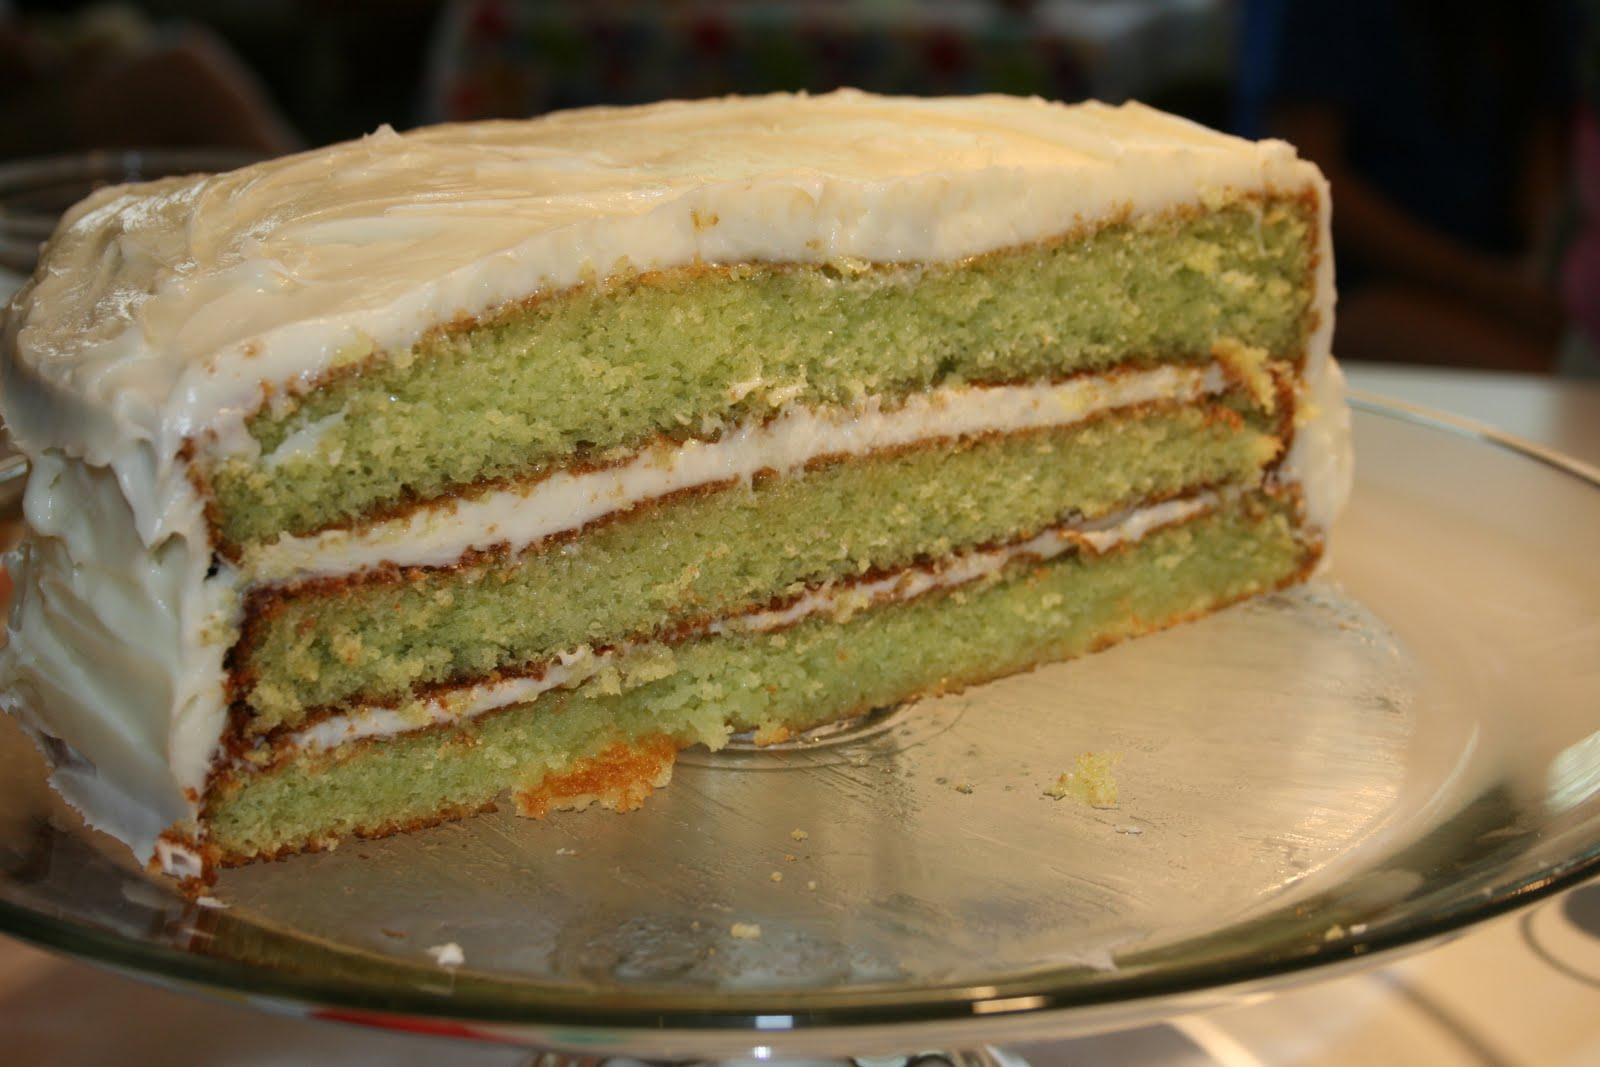 This Girl's Food: Key Lime Cake